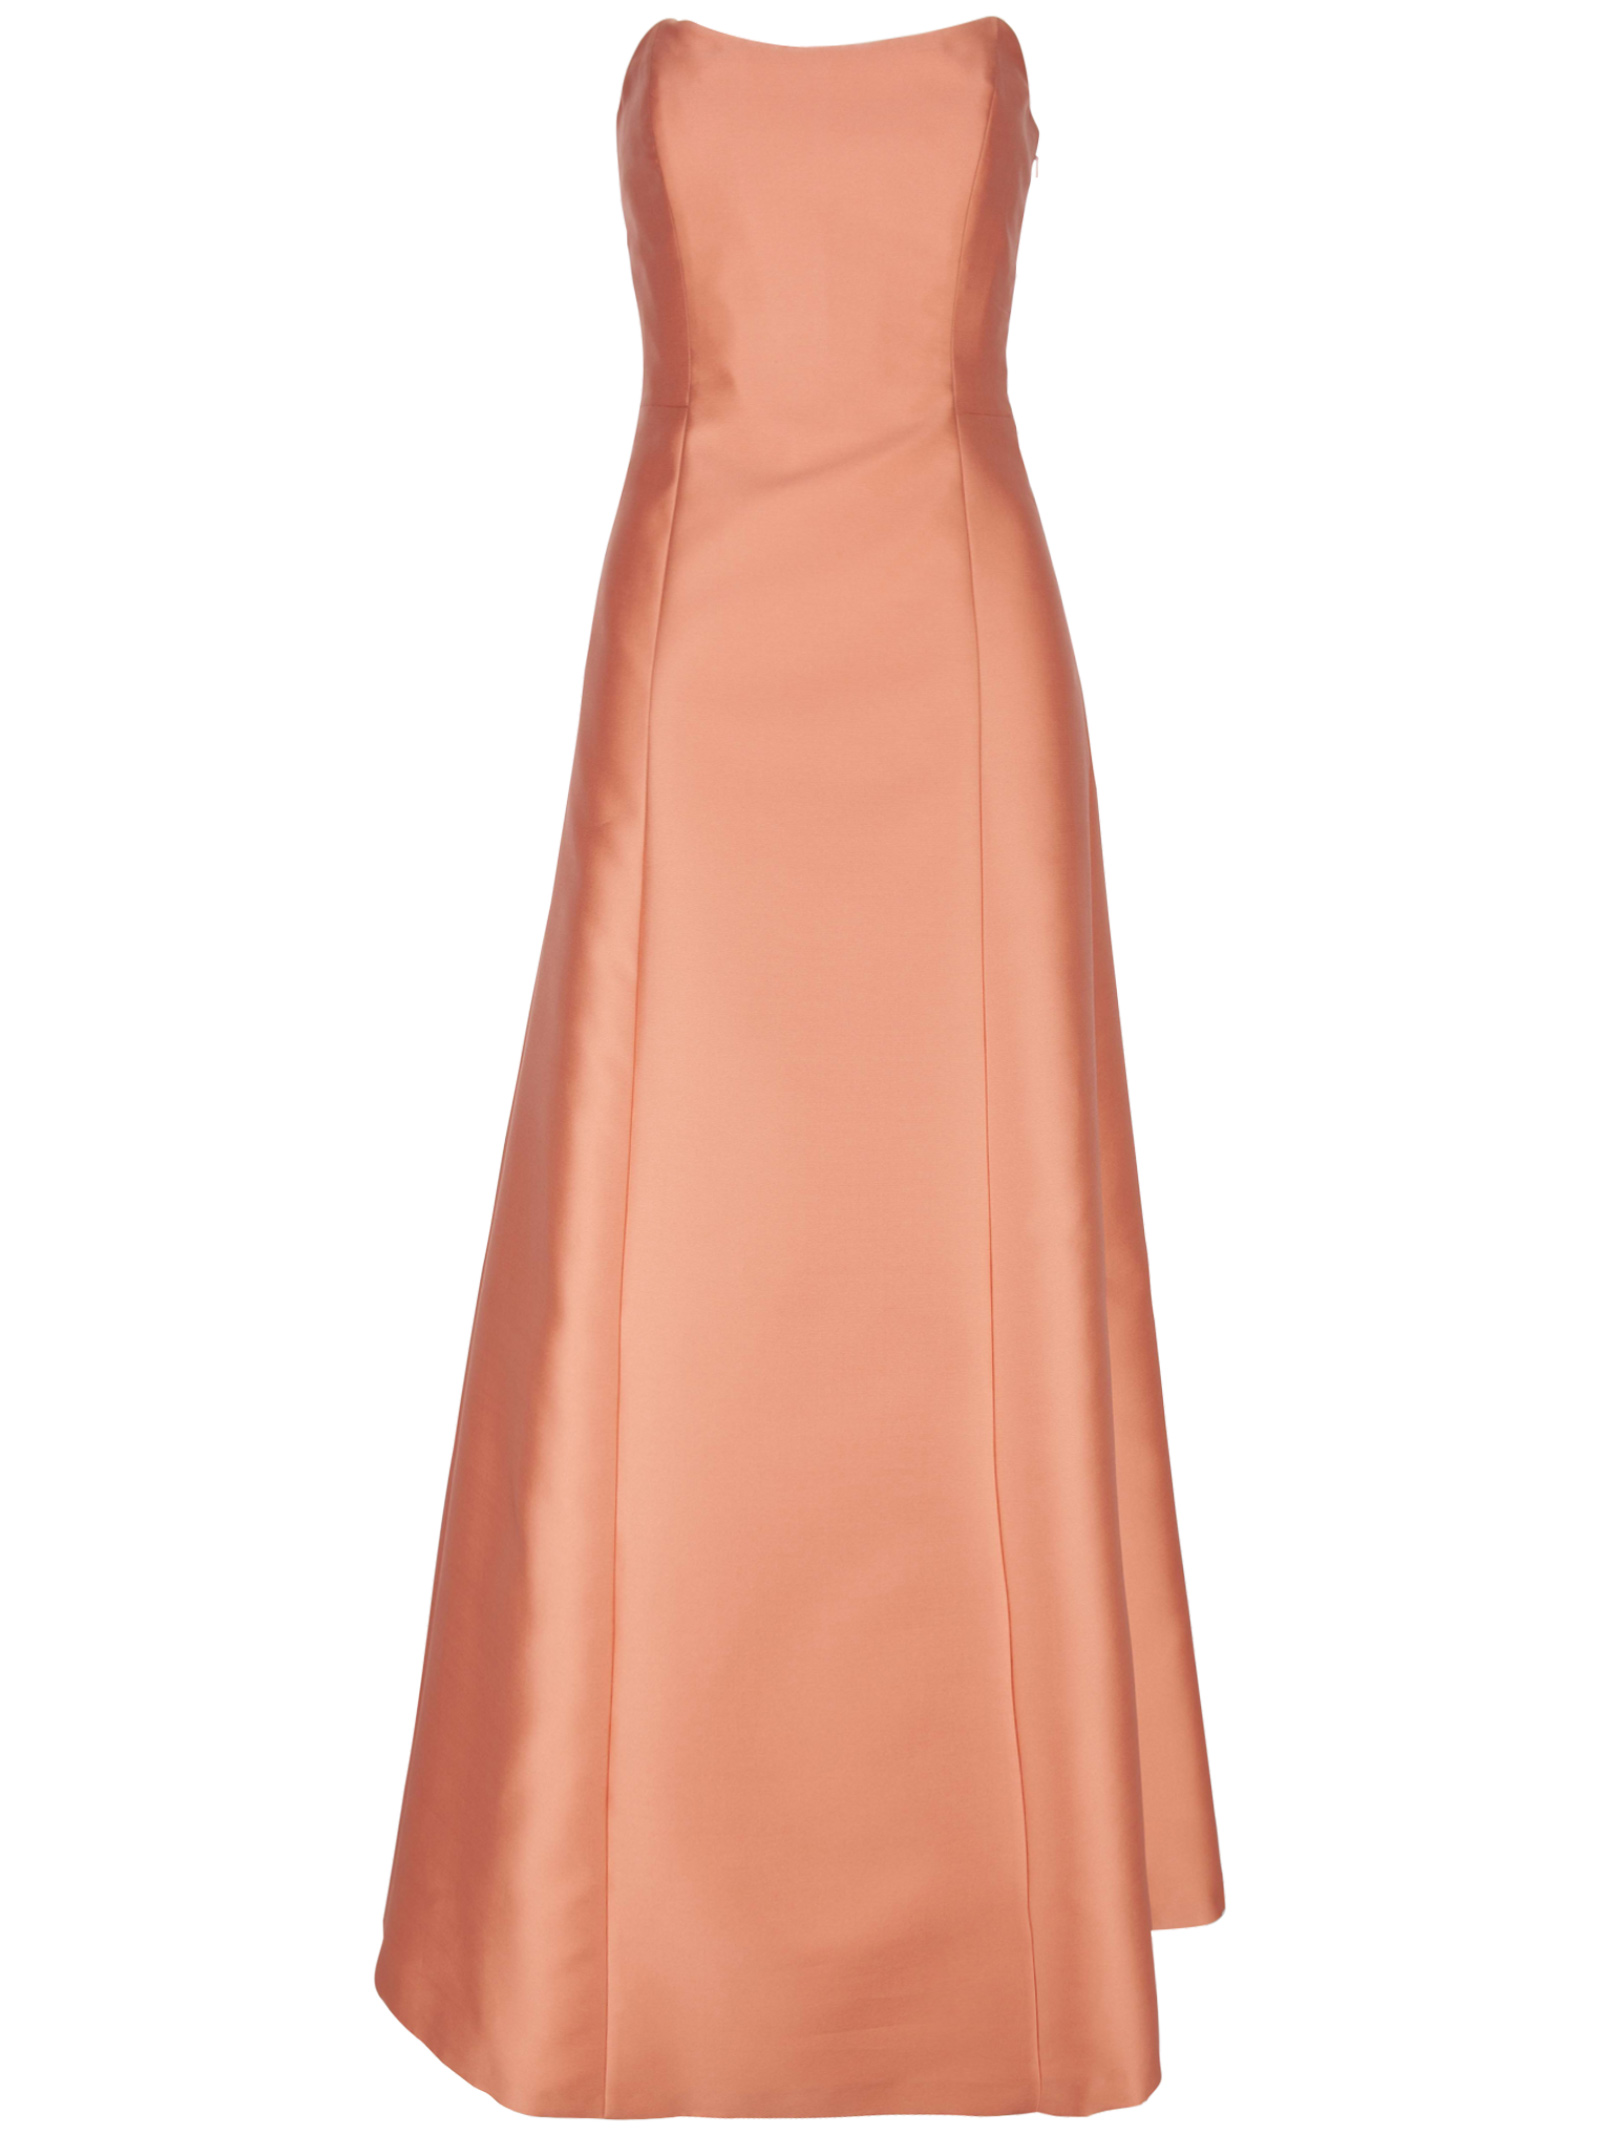 Alberta Ferretti dress